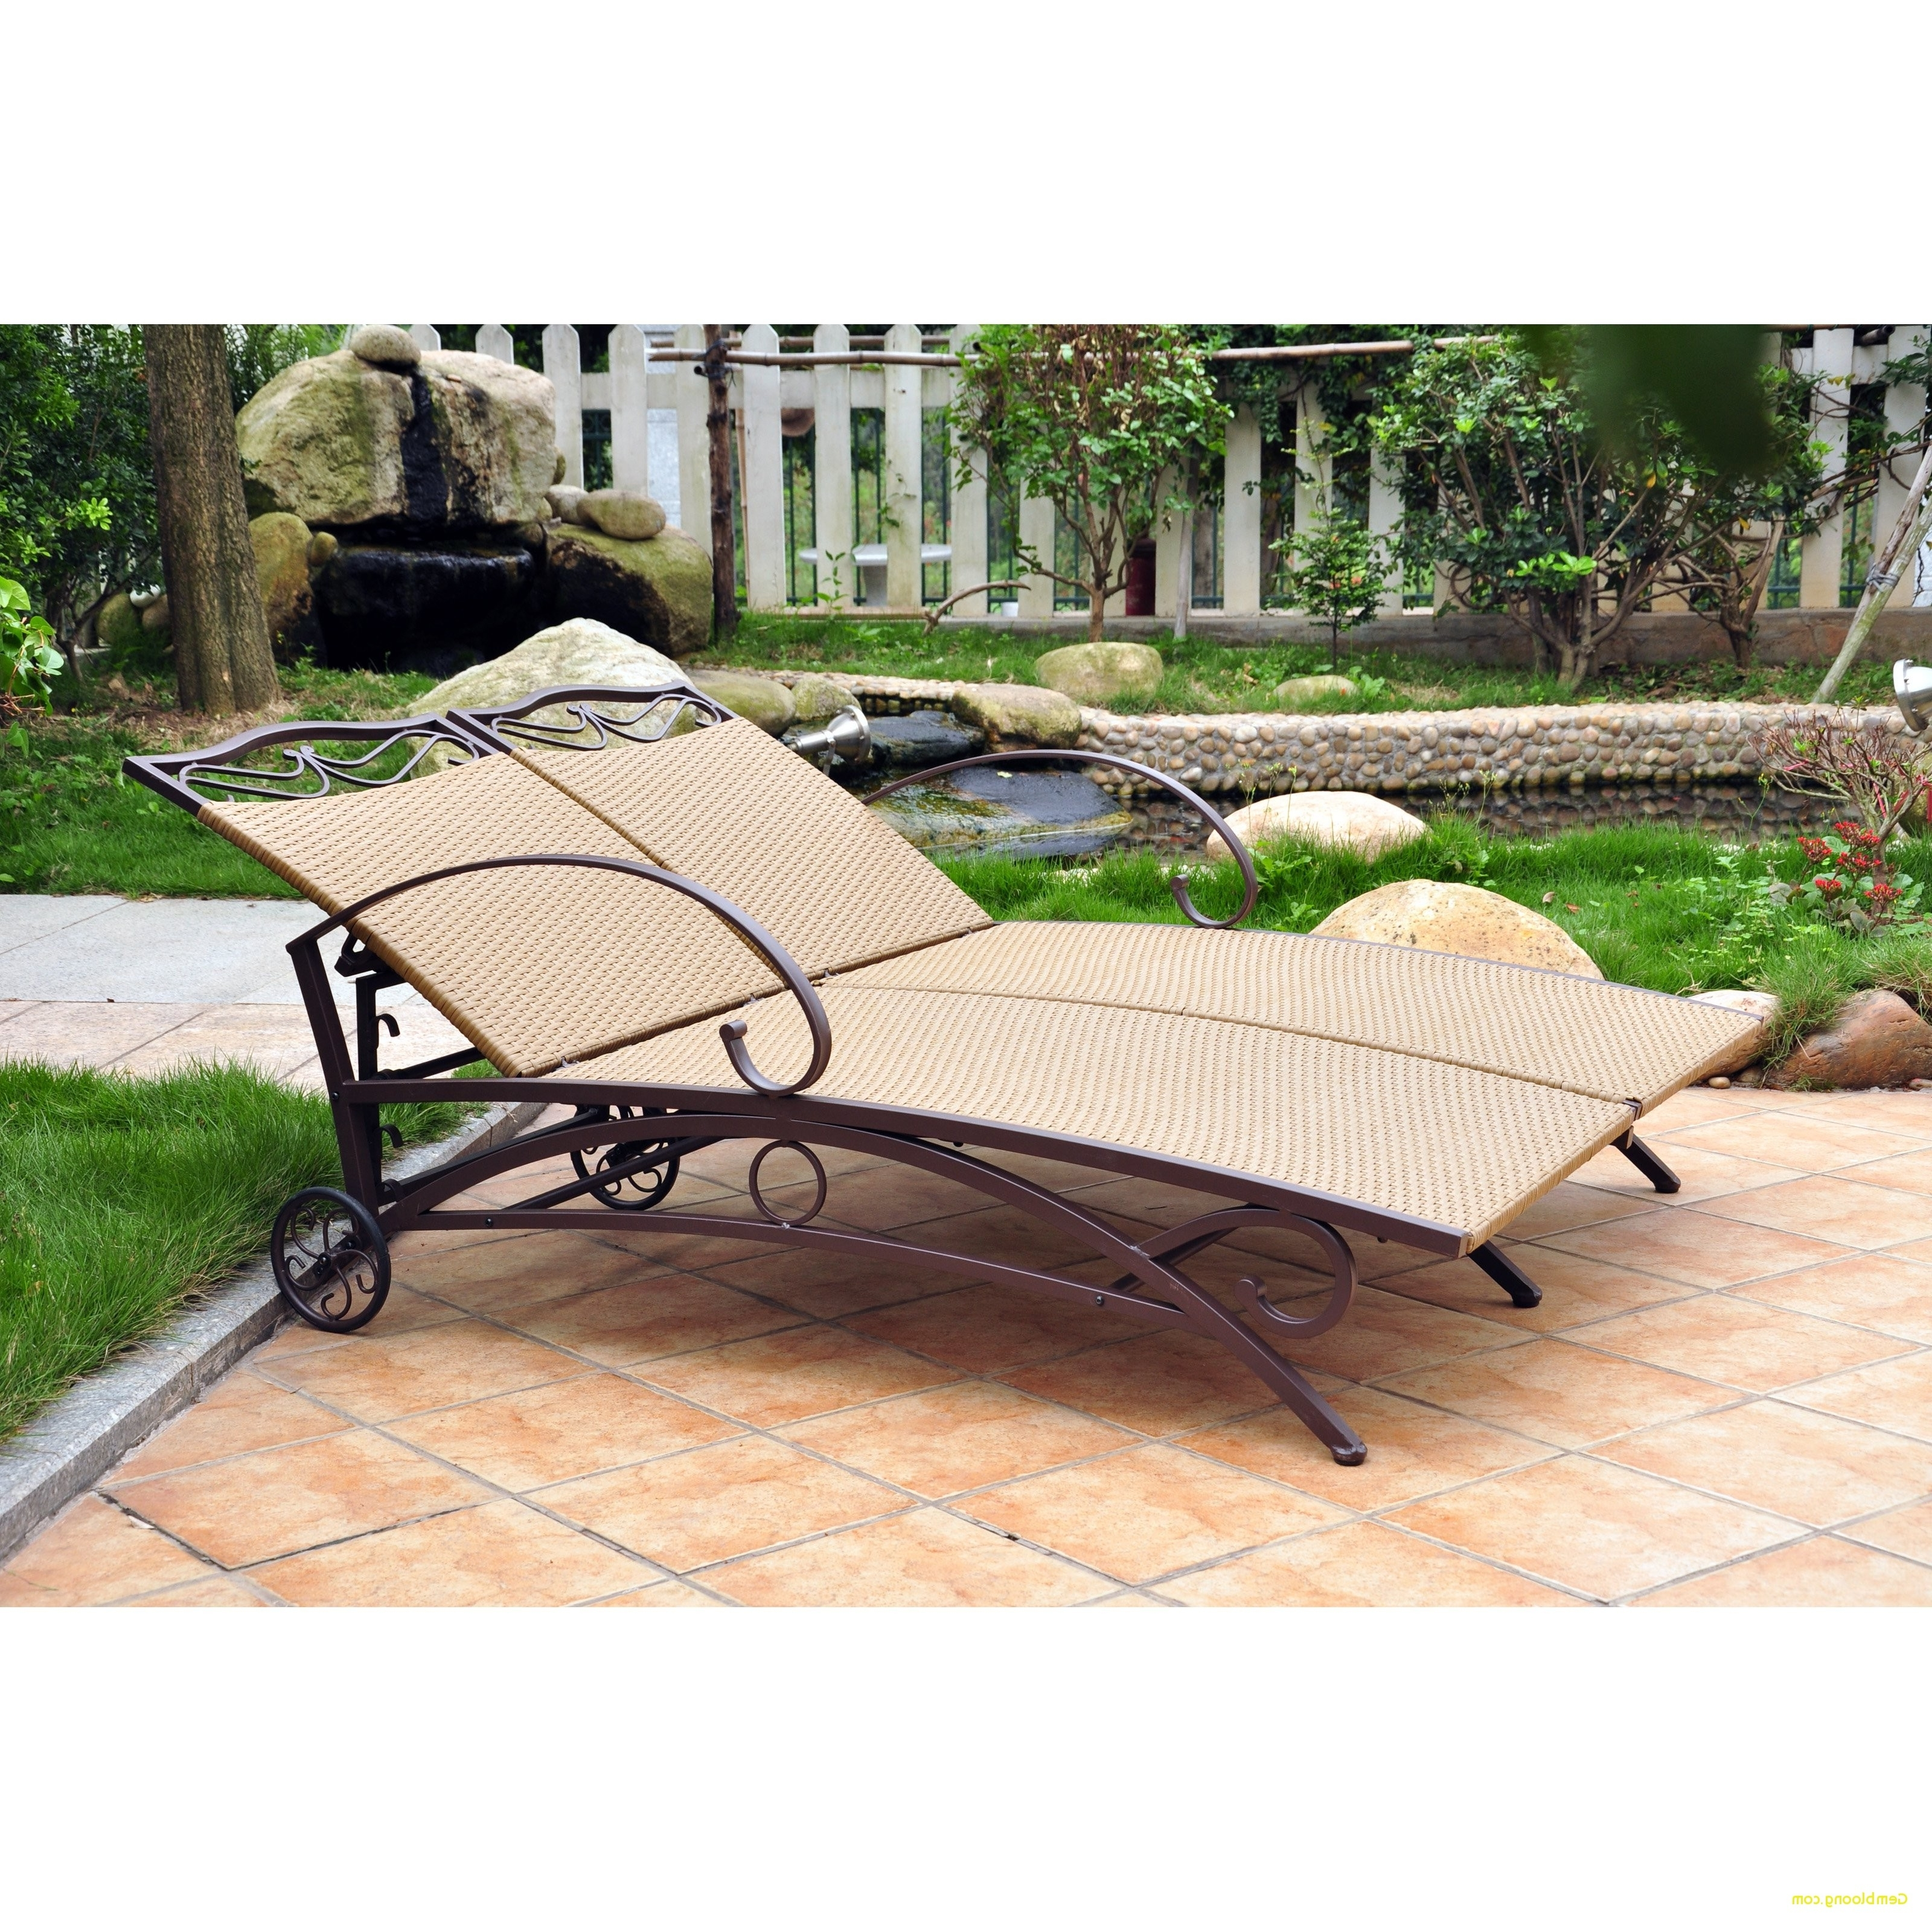 2018 Orbit Chaise Lounger Awesome $249 00 Mainstays Deluxe Orbit Chaise With Regard To Orbit Chaise Lounges (View 1 of 15)